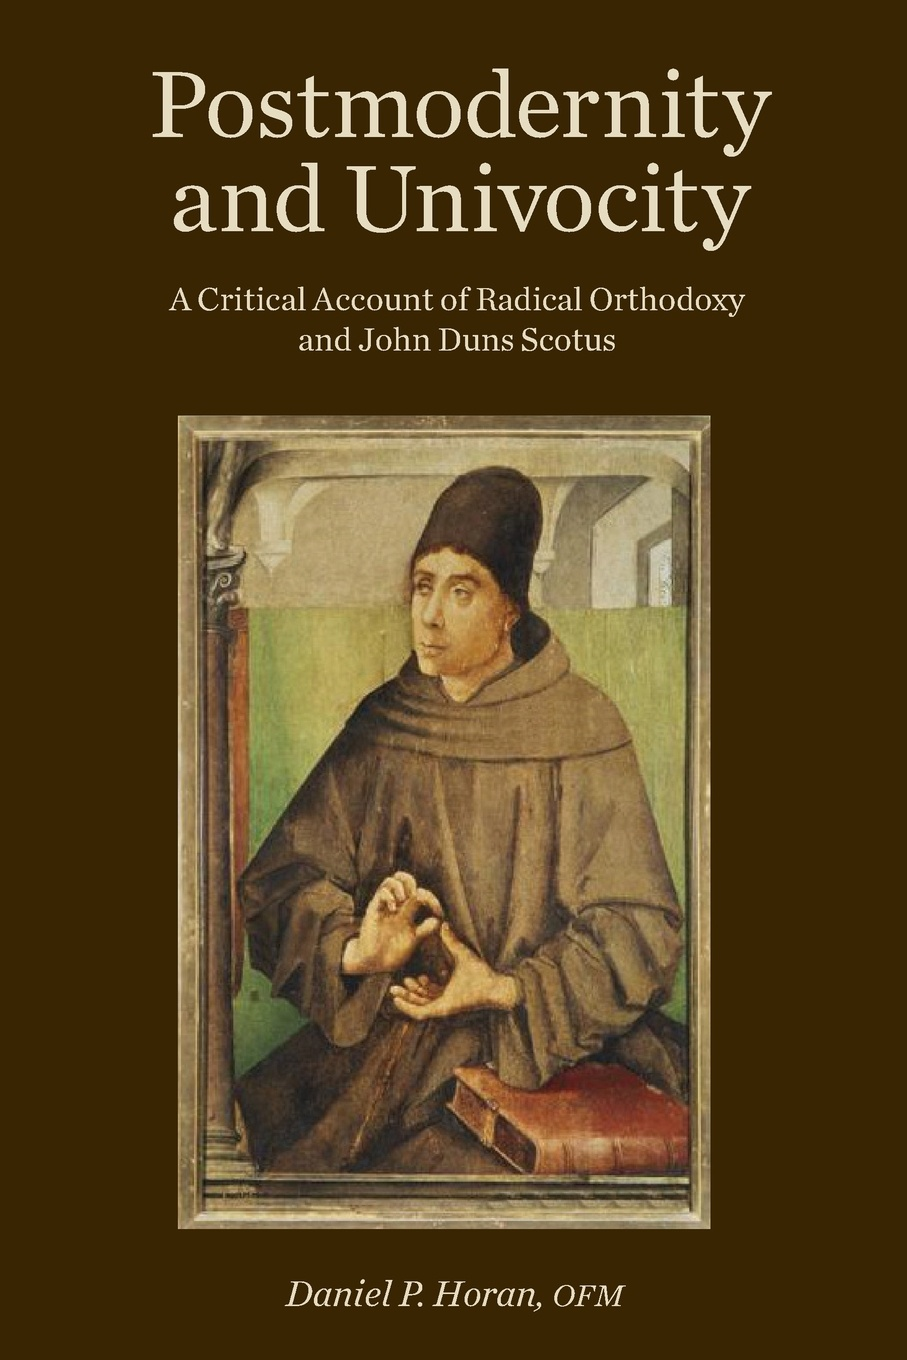 Daniel P. Horan Postmodernity and Univocity. A Critical Account of Radical Orthodoxy and John Duns Scotus john duns scotus joannis duns scoti doctoris subtilis ordinis minorum opera omnia tomi 7 pars 1